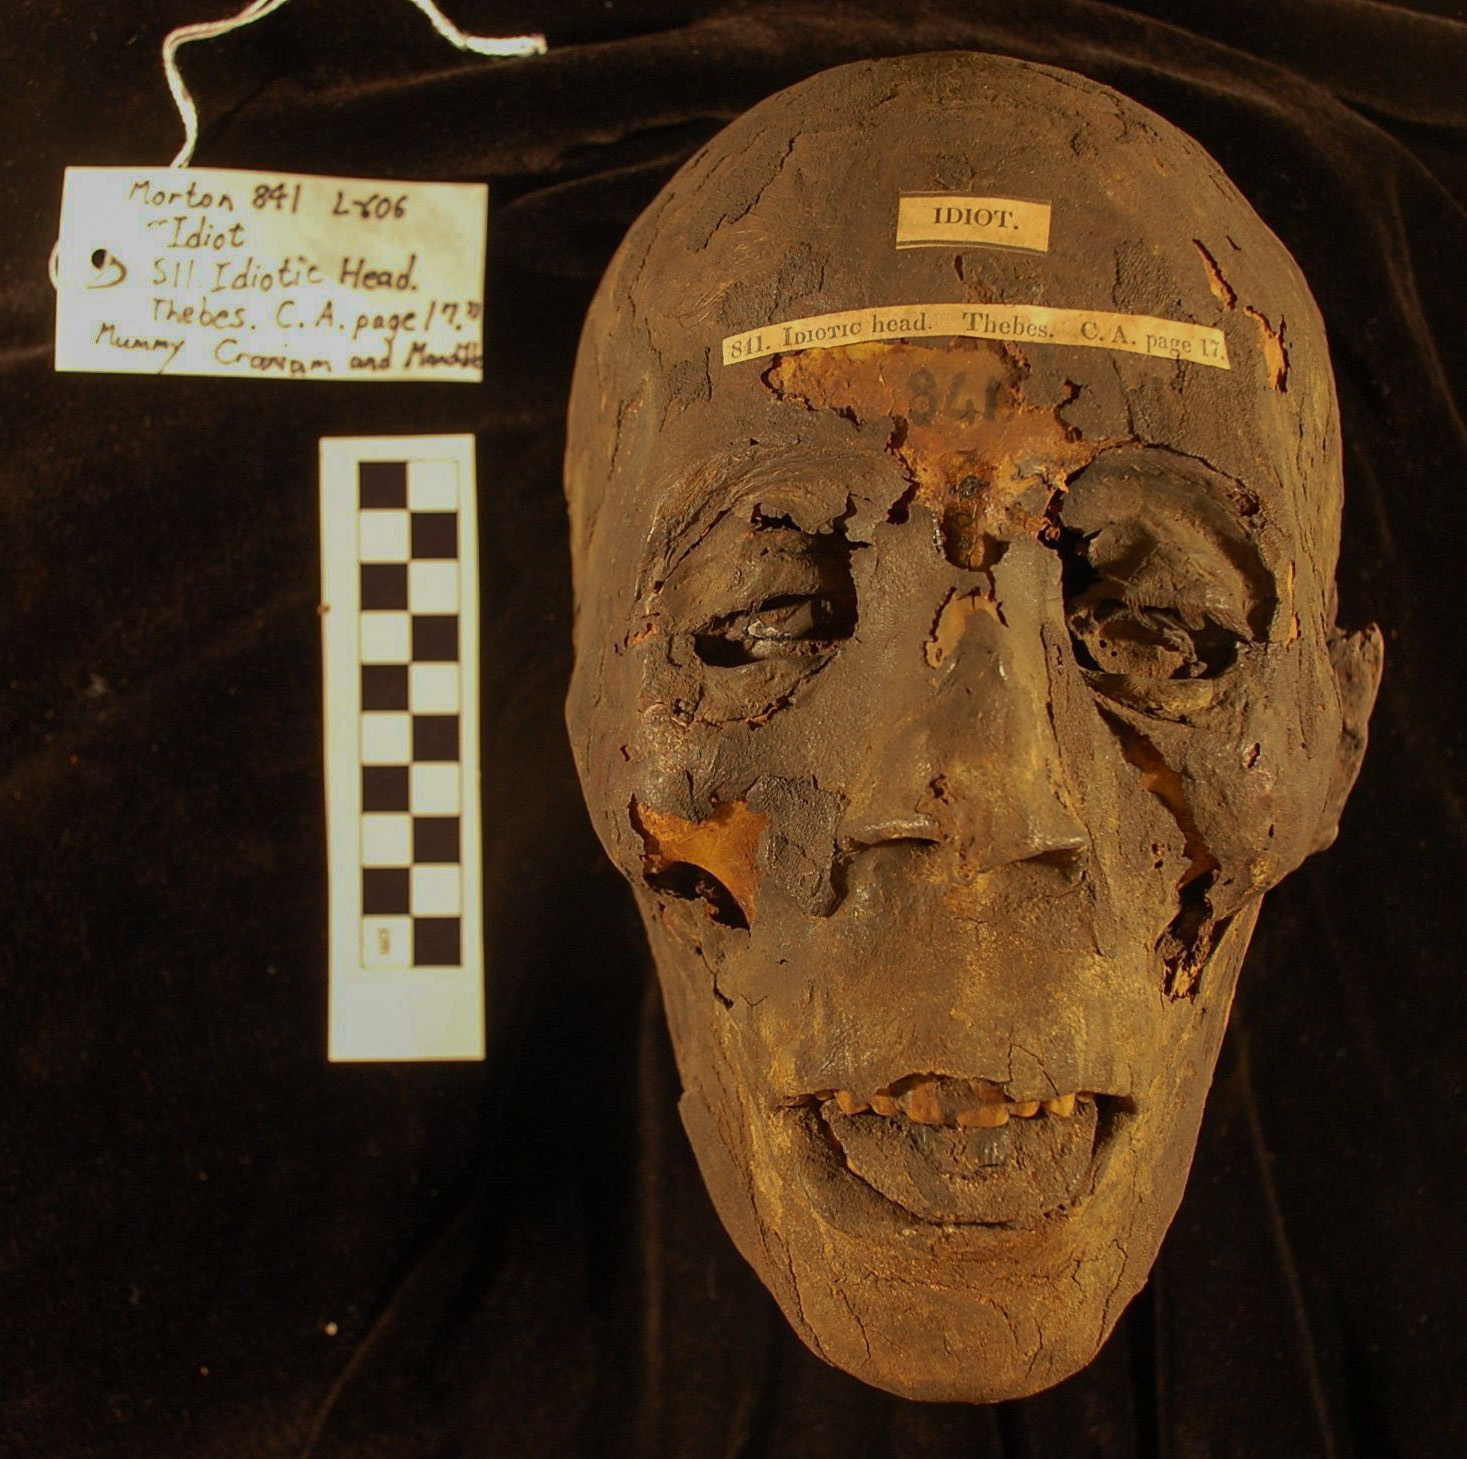 Figure 3: Mummified Egyptian crania #0841 of the Morton Cranial Collection, Penn Museum Open Research Scan Archive (ORSA).